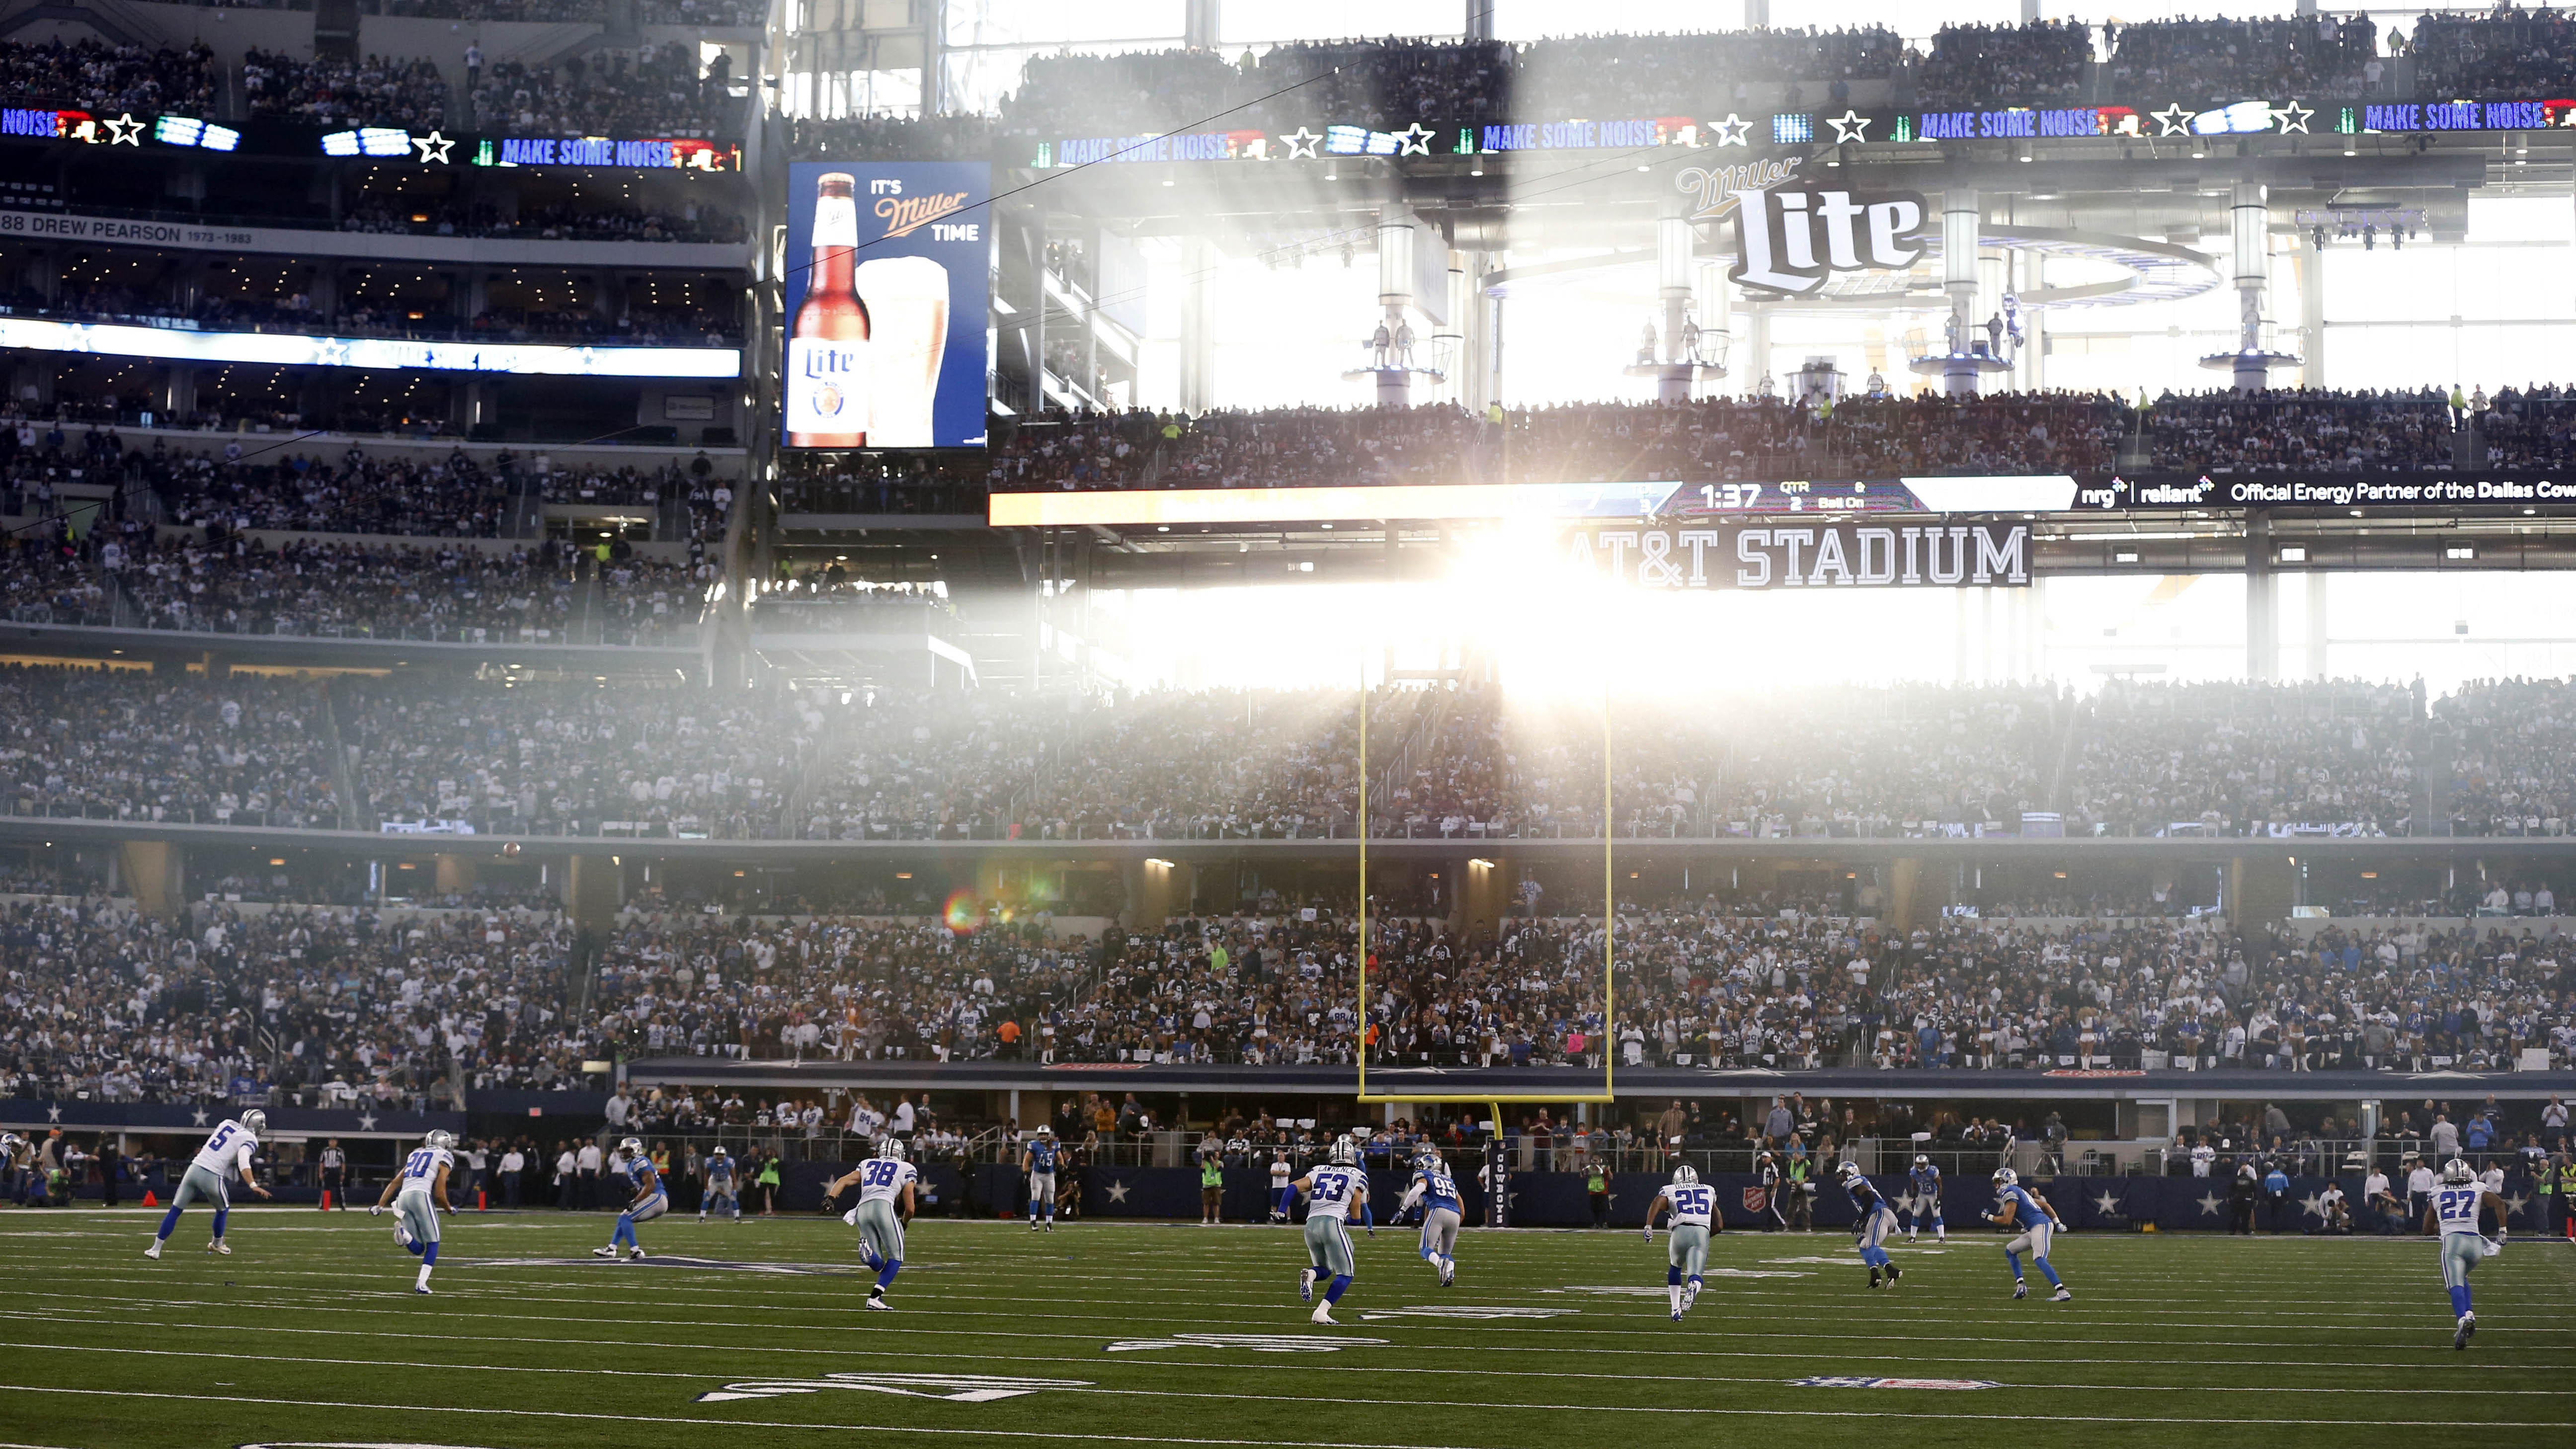 Sweet Dreams: Cowboys to host 100 underserved youth in sleepover at AT&T Stadium